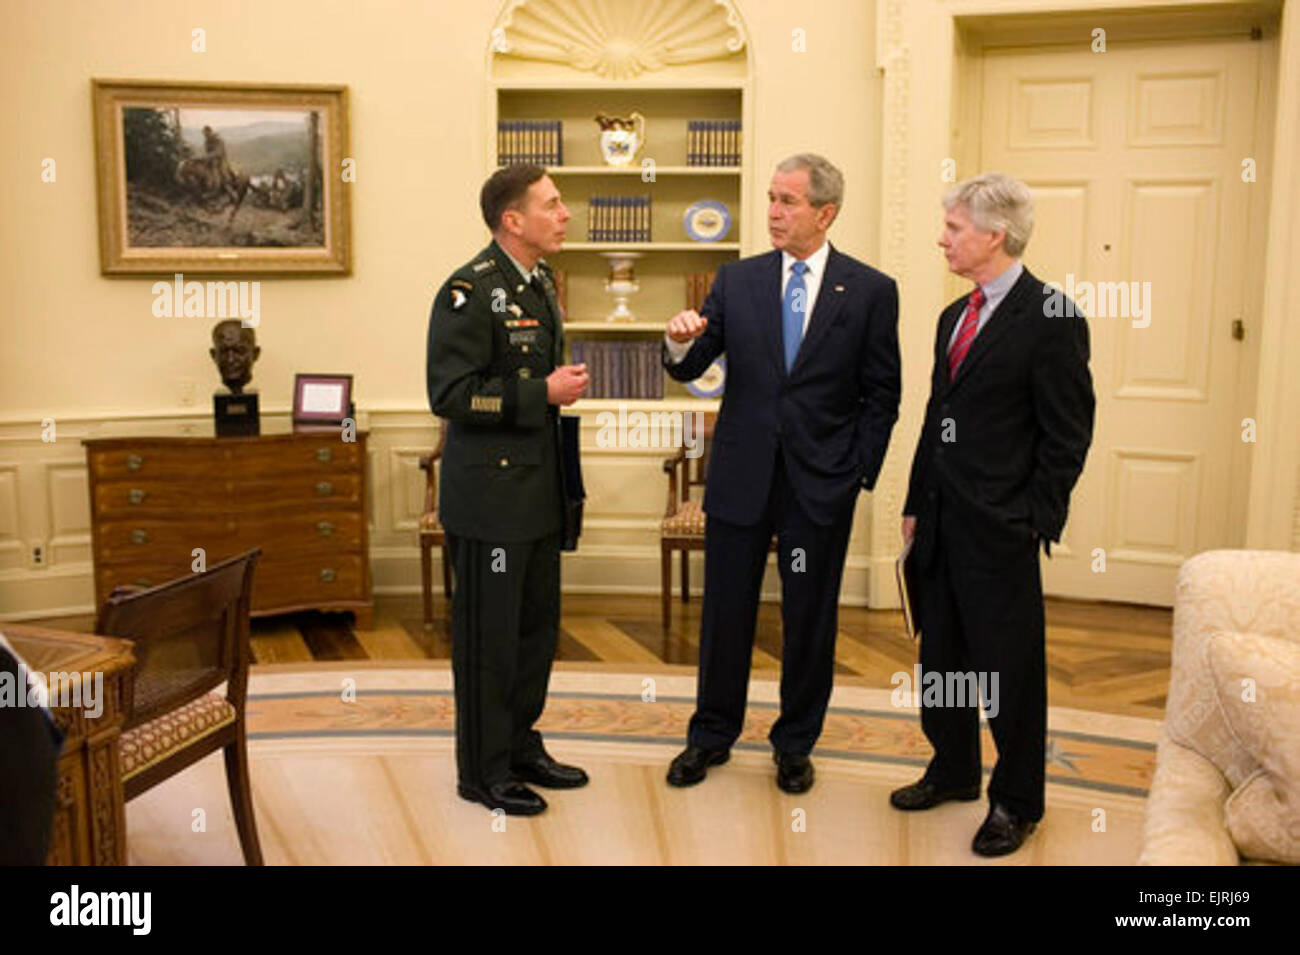 President George W. Bush meets with General David Petraeus, Commander of the Multi-National Force-Iraq, and U.S. - Stock Image